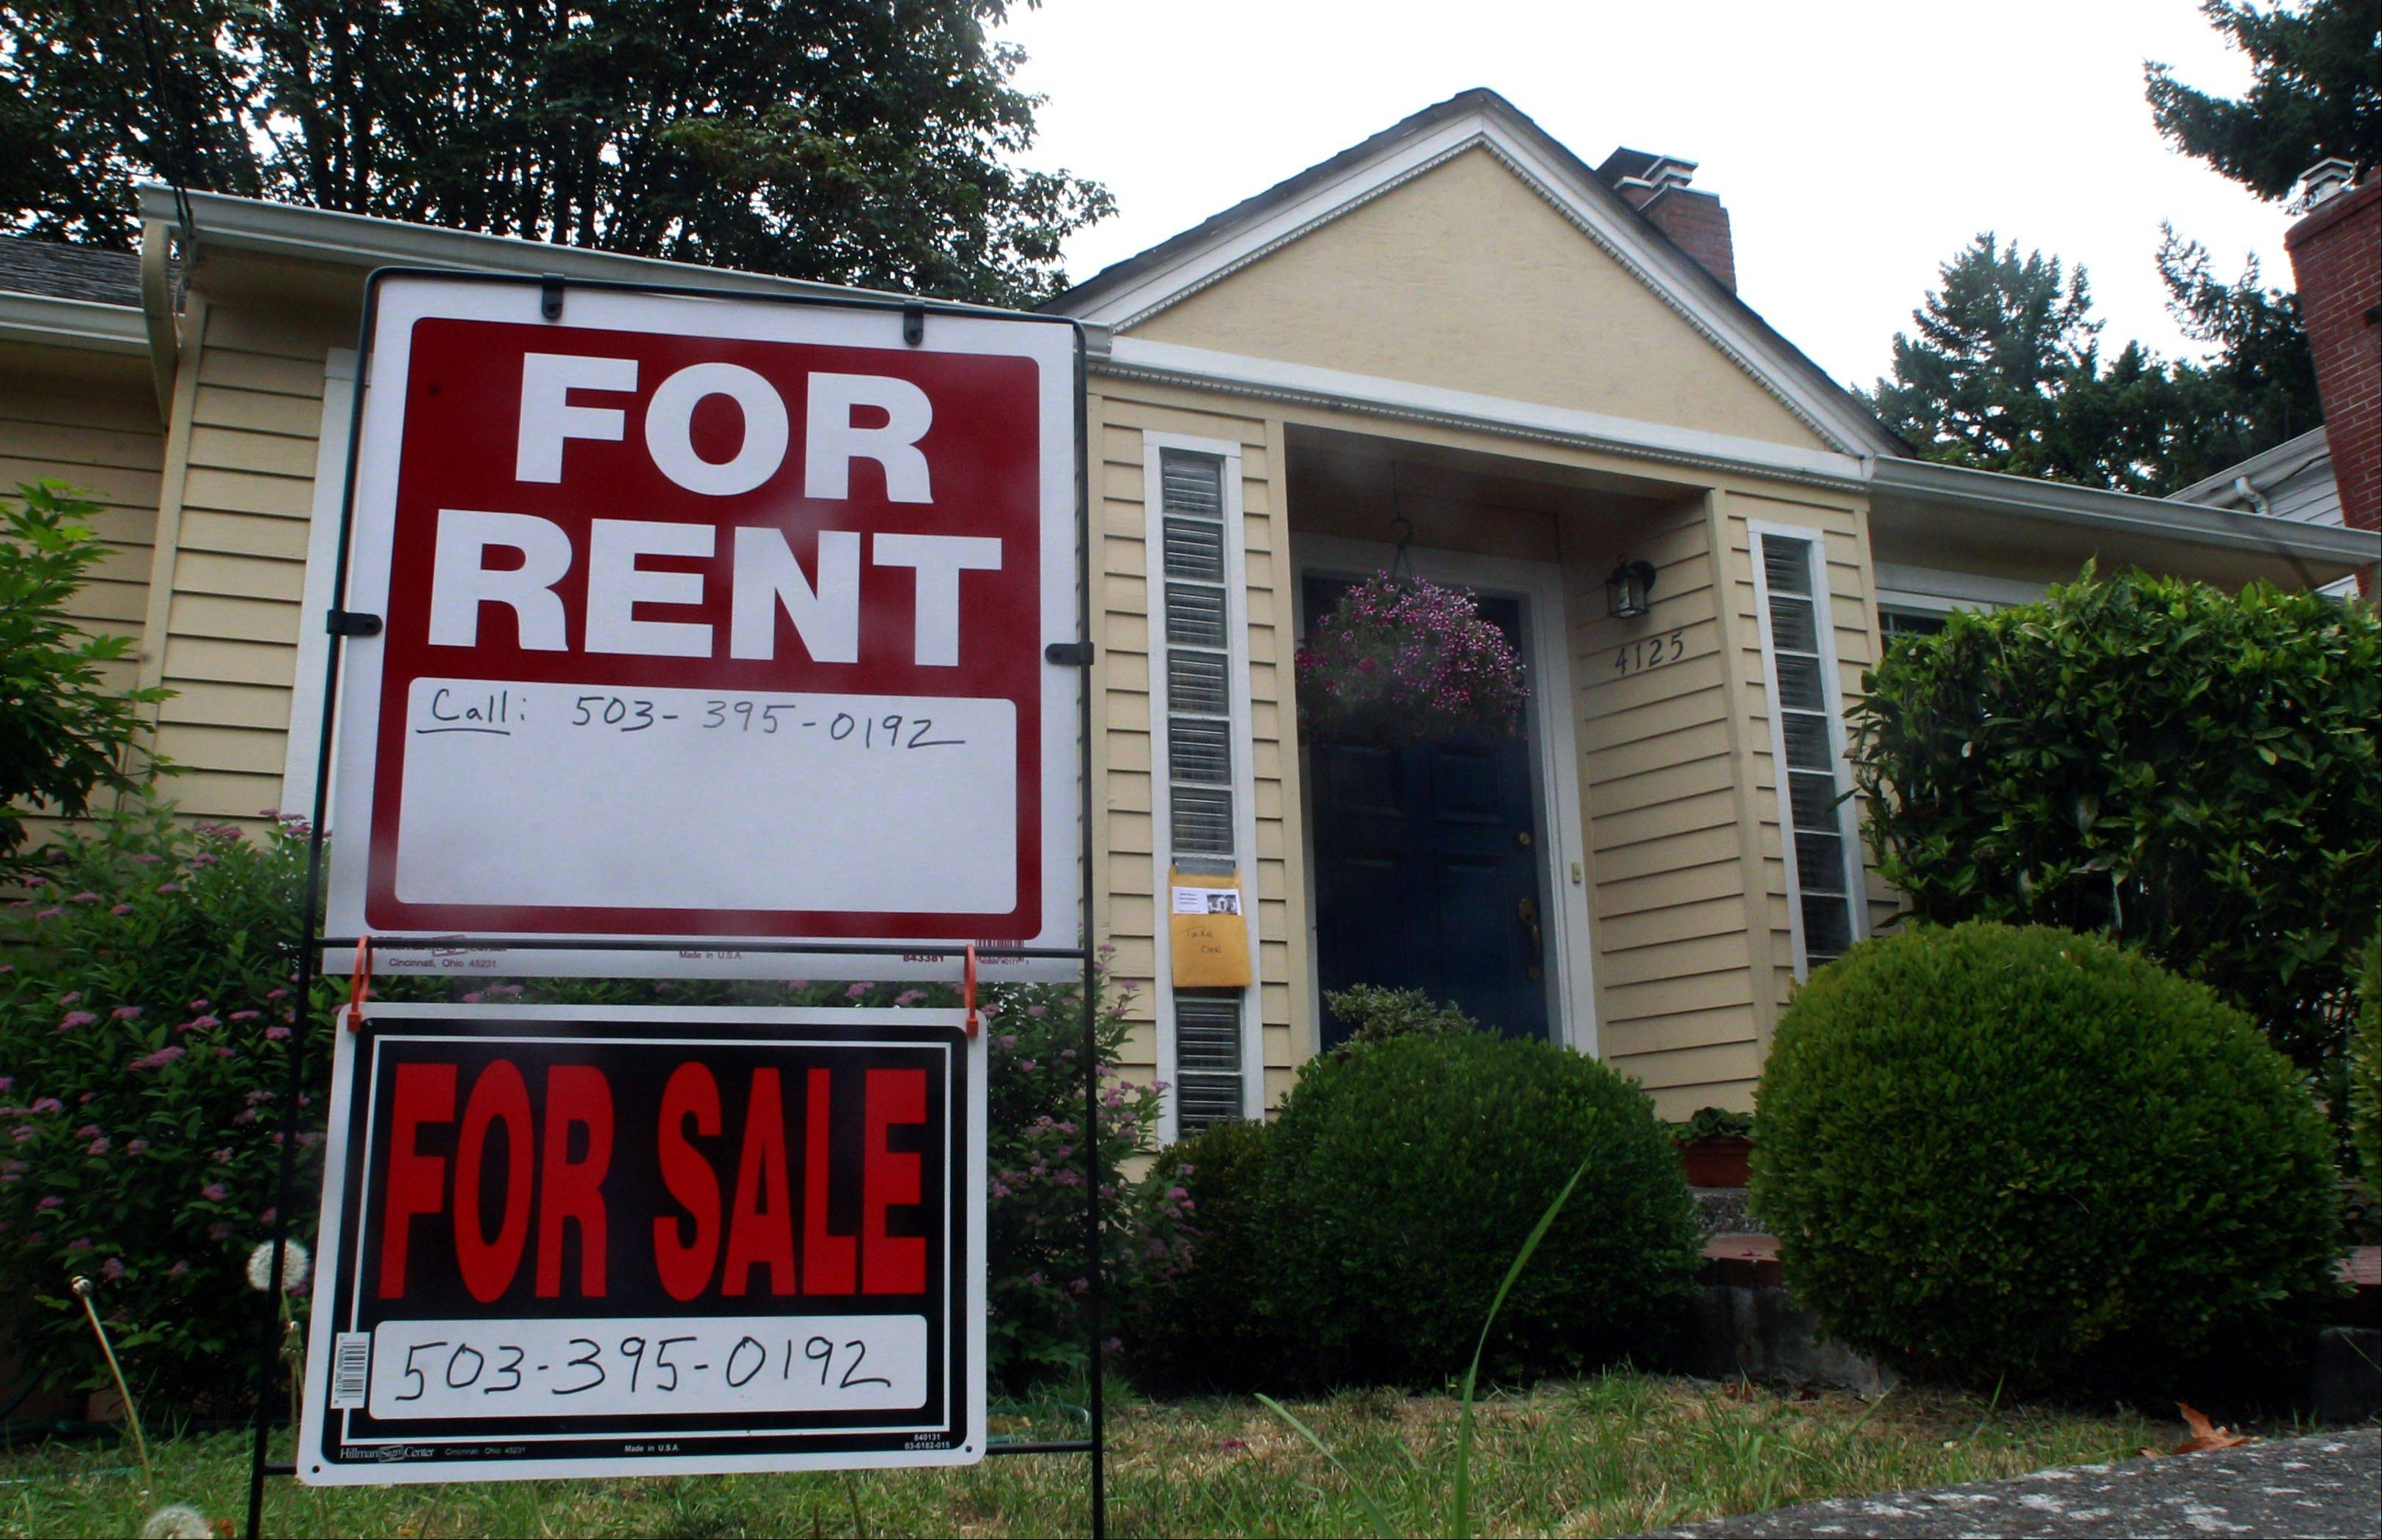 A house is for rent an for sale in Portland, Ore. Experts say owning rental housing can pay off even as market recovers.